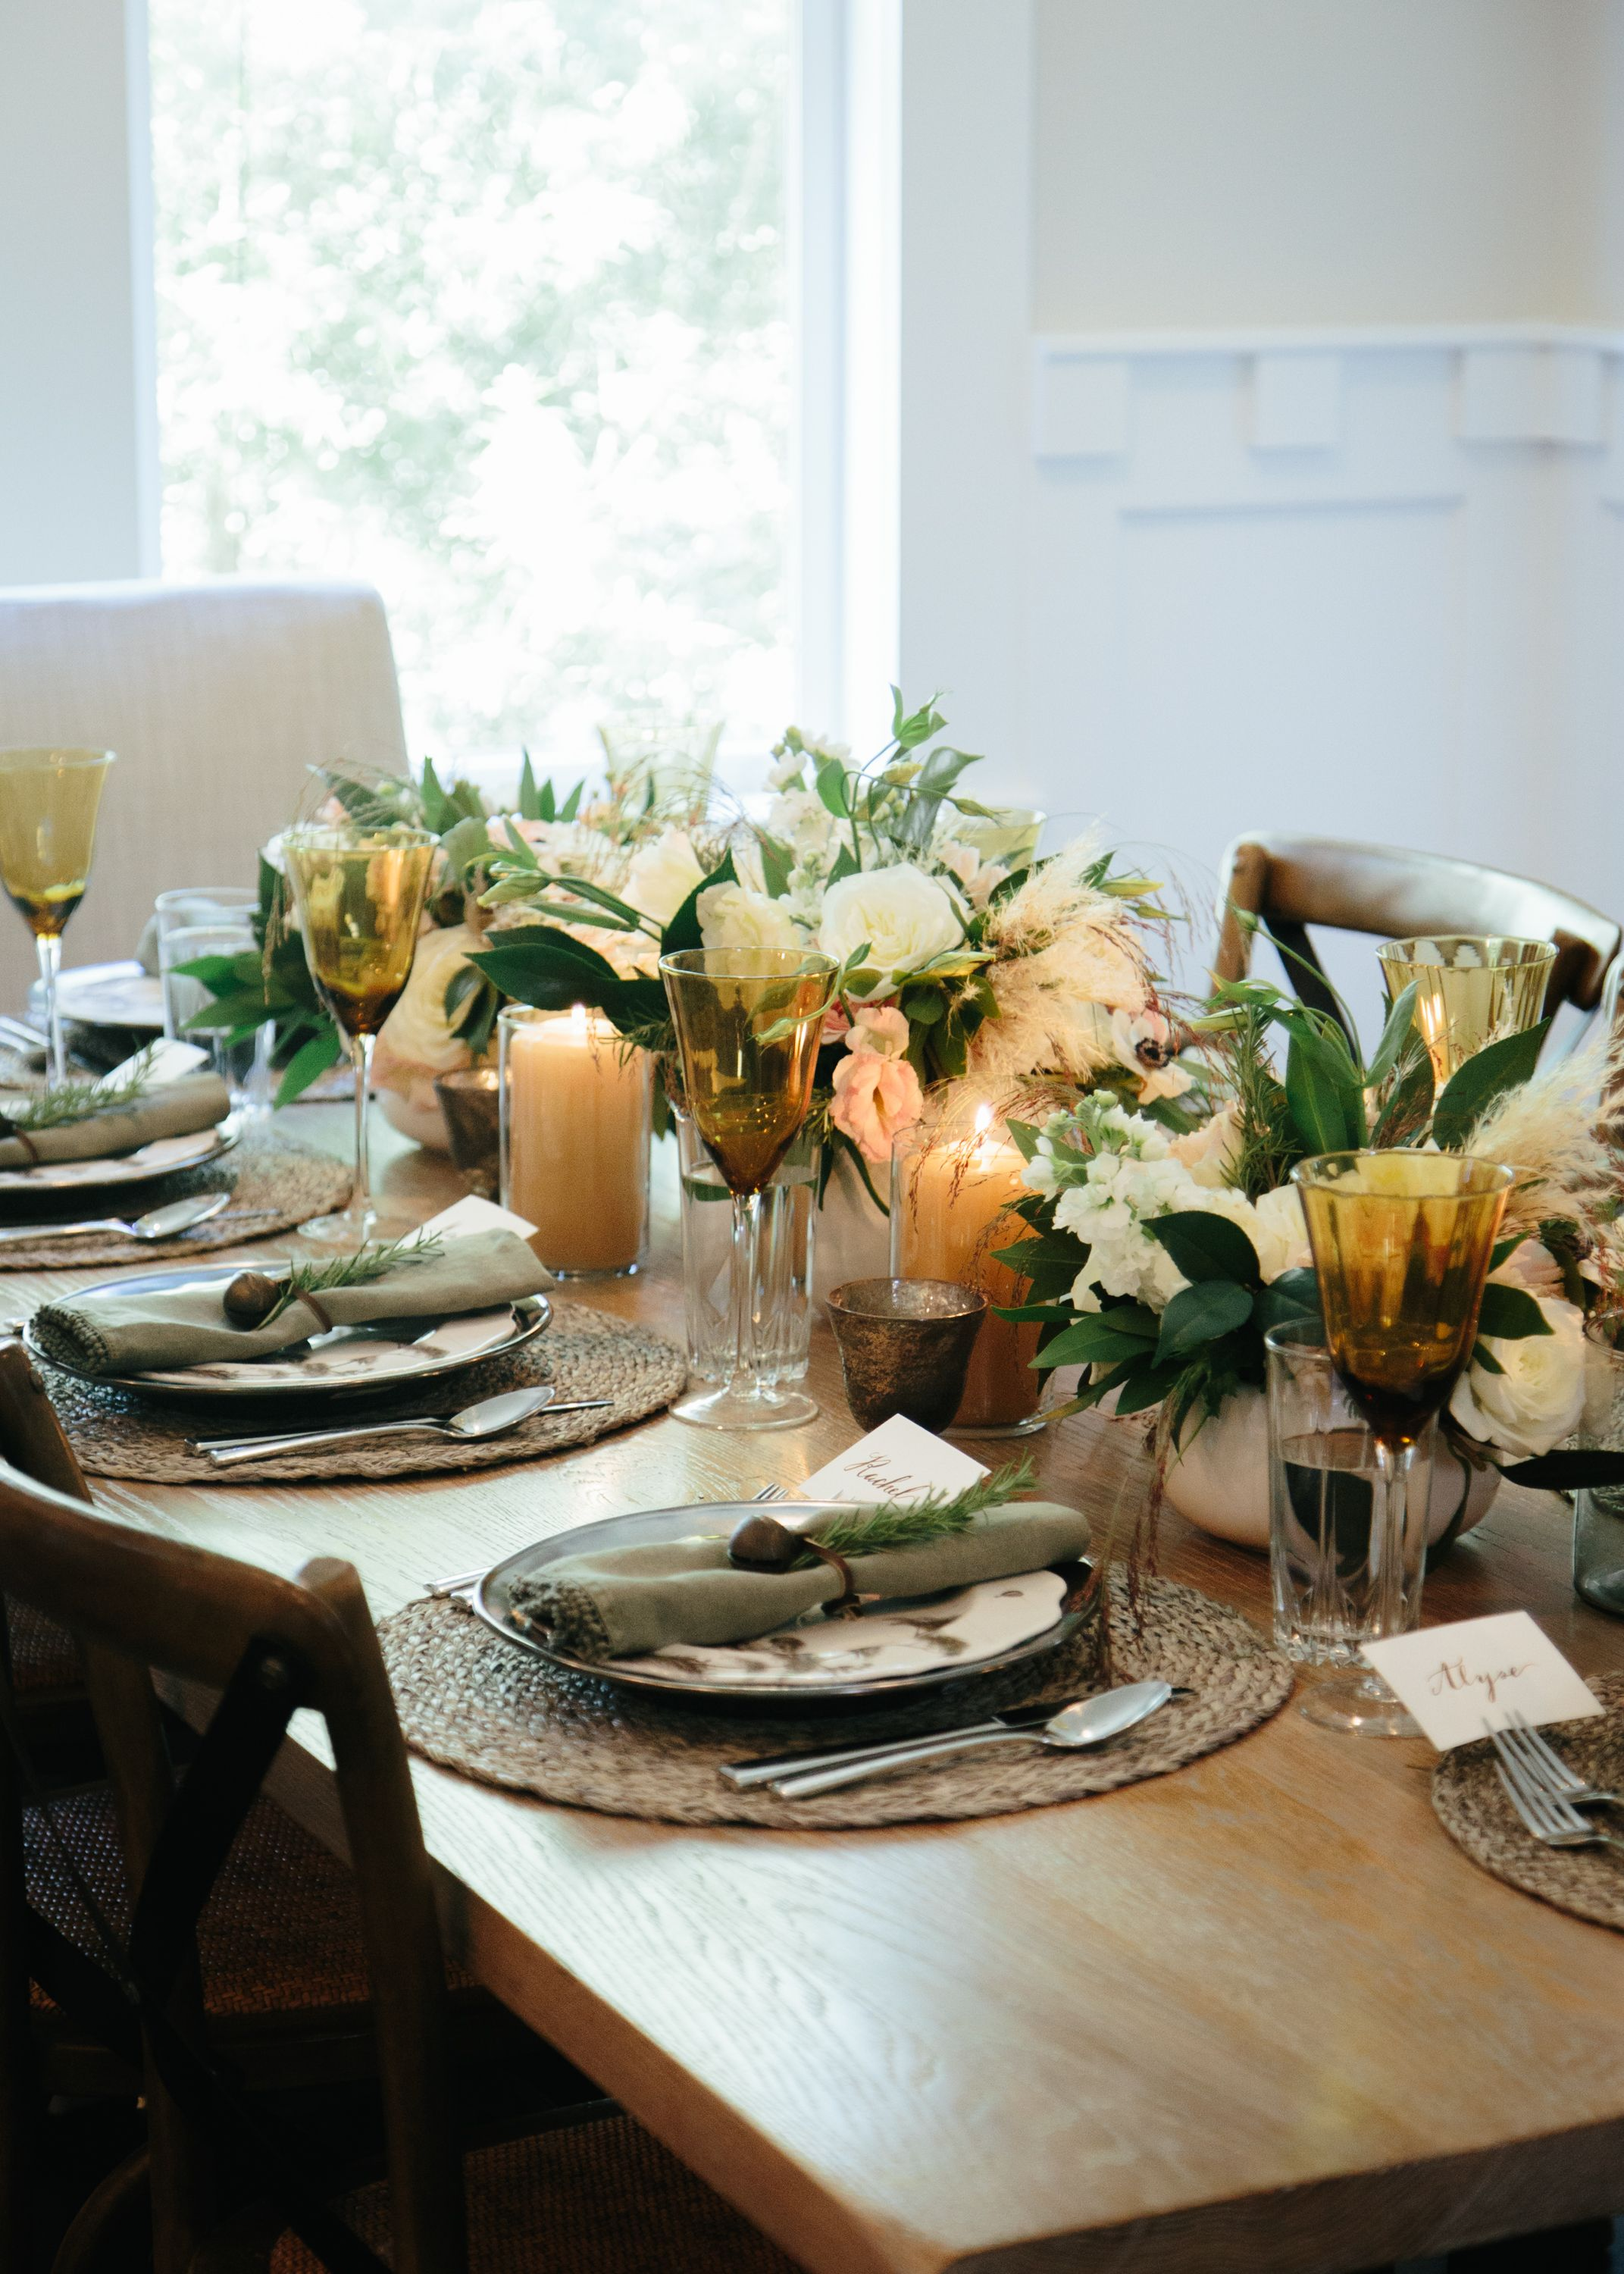 holiday table settings. marie flanigan interiors - holiday table setting organic white peach & Holiday Table Settings Marie Flanigan Interiors - Holiday Table ...